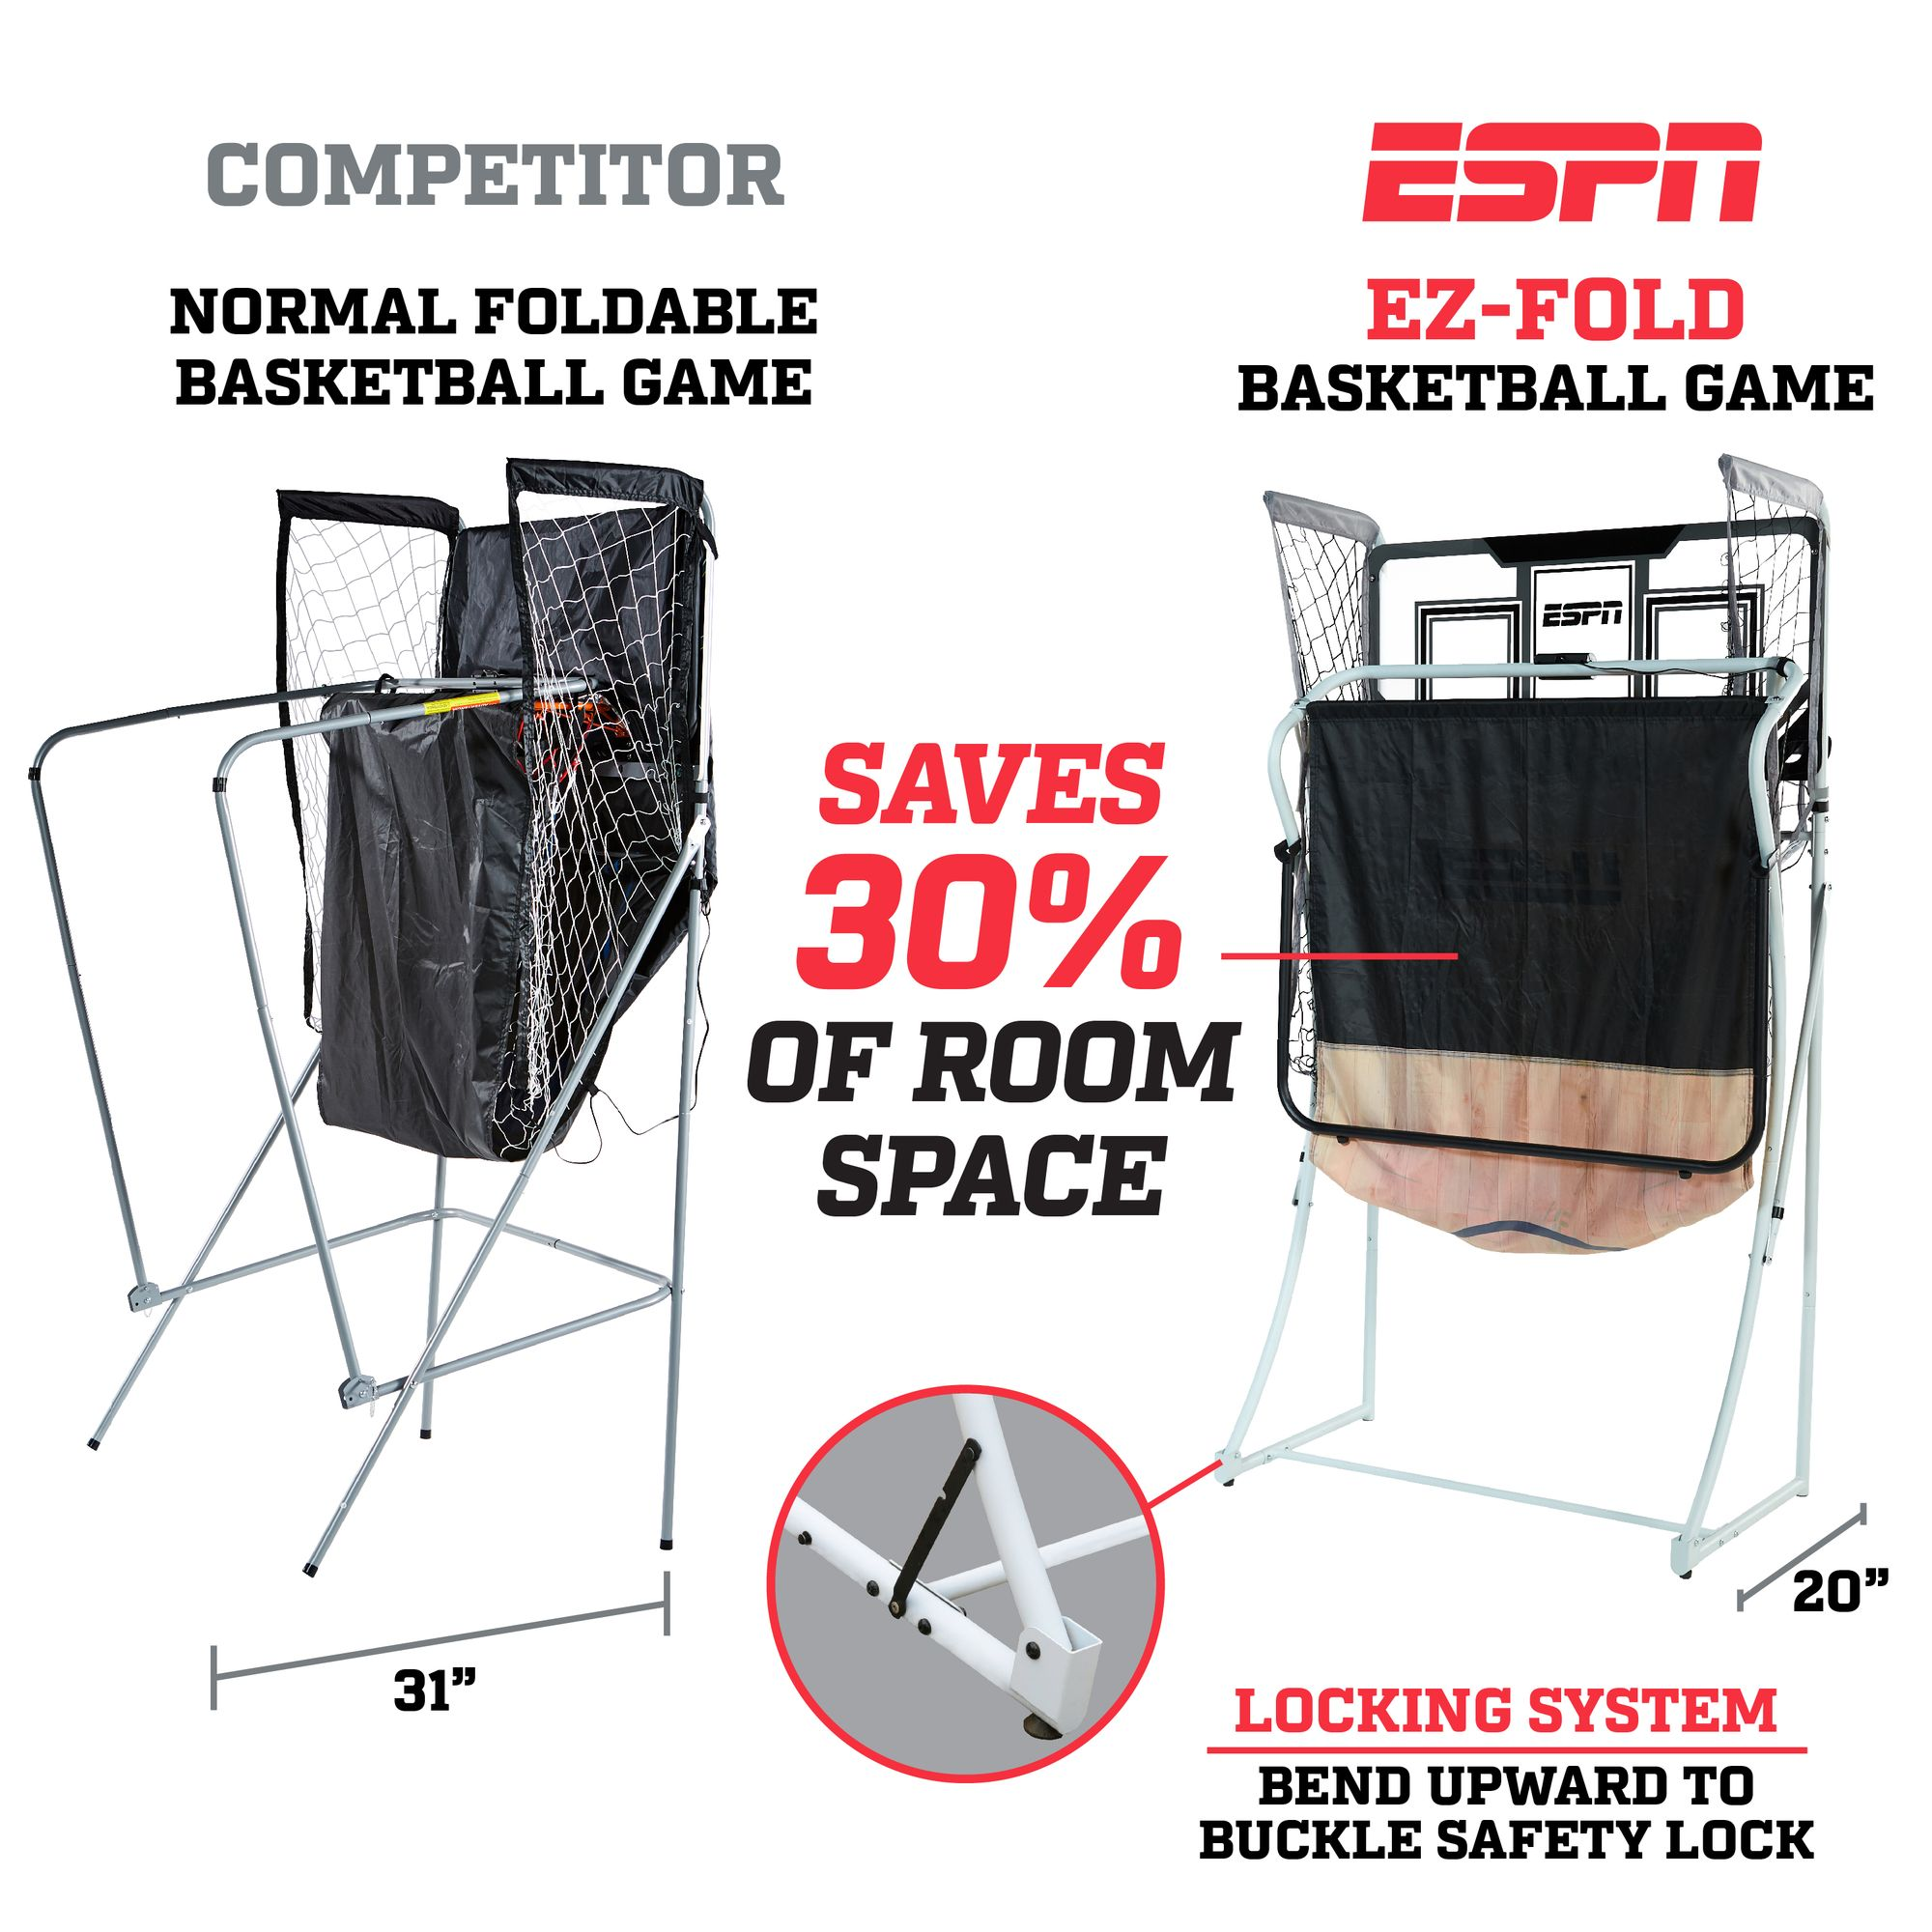 ESPN EZ-FOLD 2-Player Arcade Basketball Game with Authentic PC Backboard  and LED Scoring, 4 rubber basketballs, 1 air pump and needle